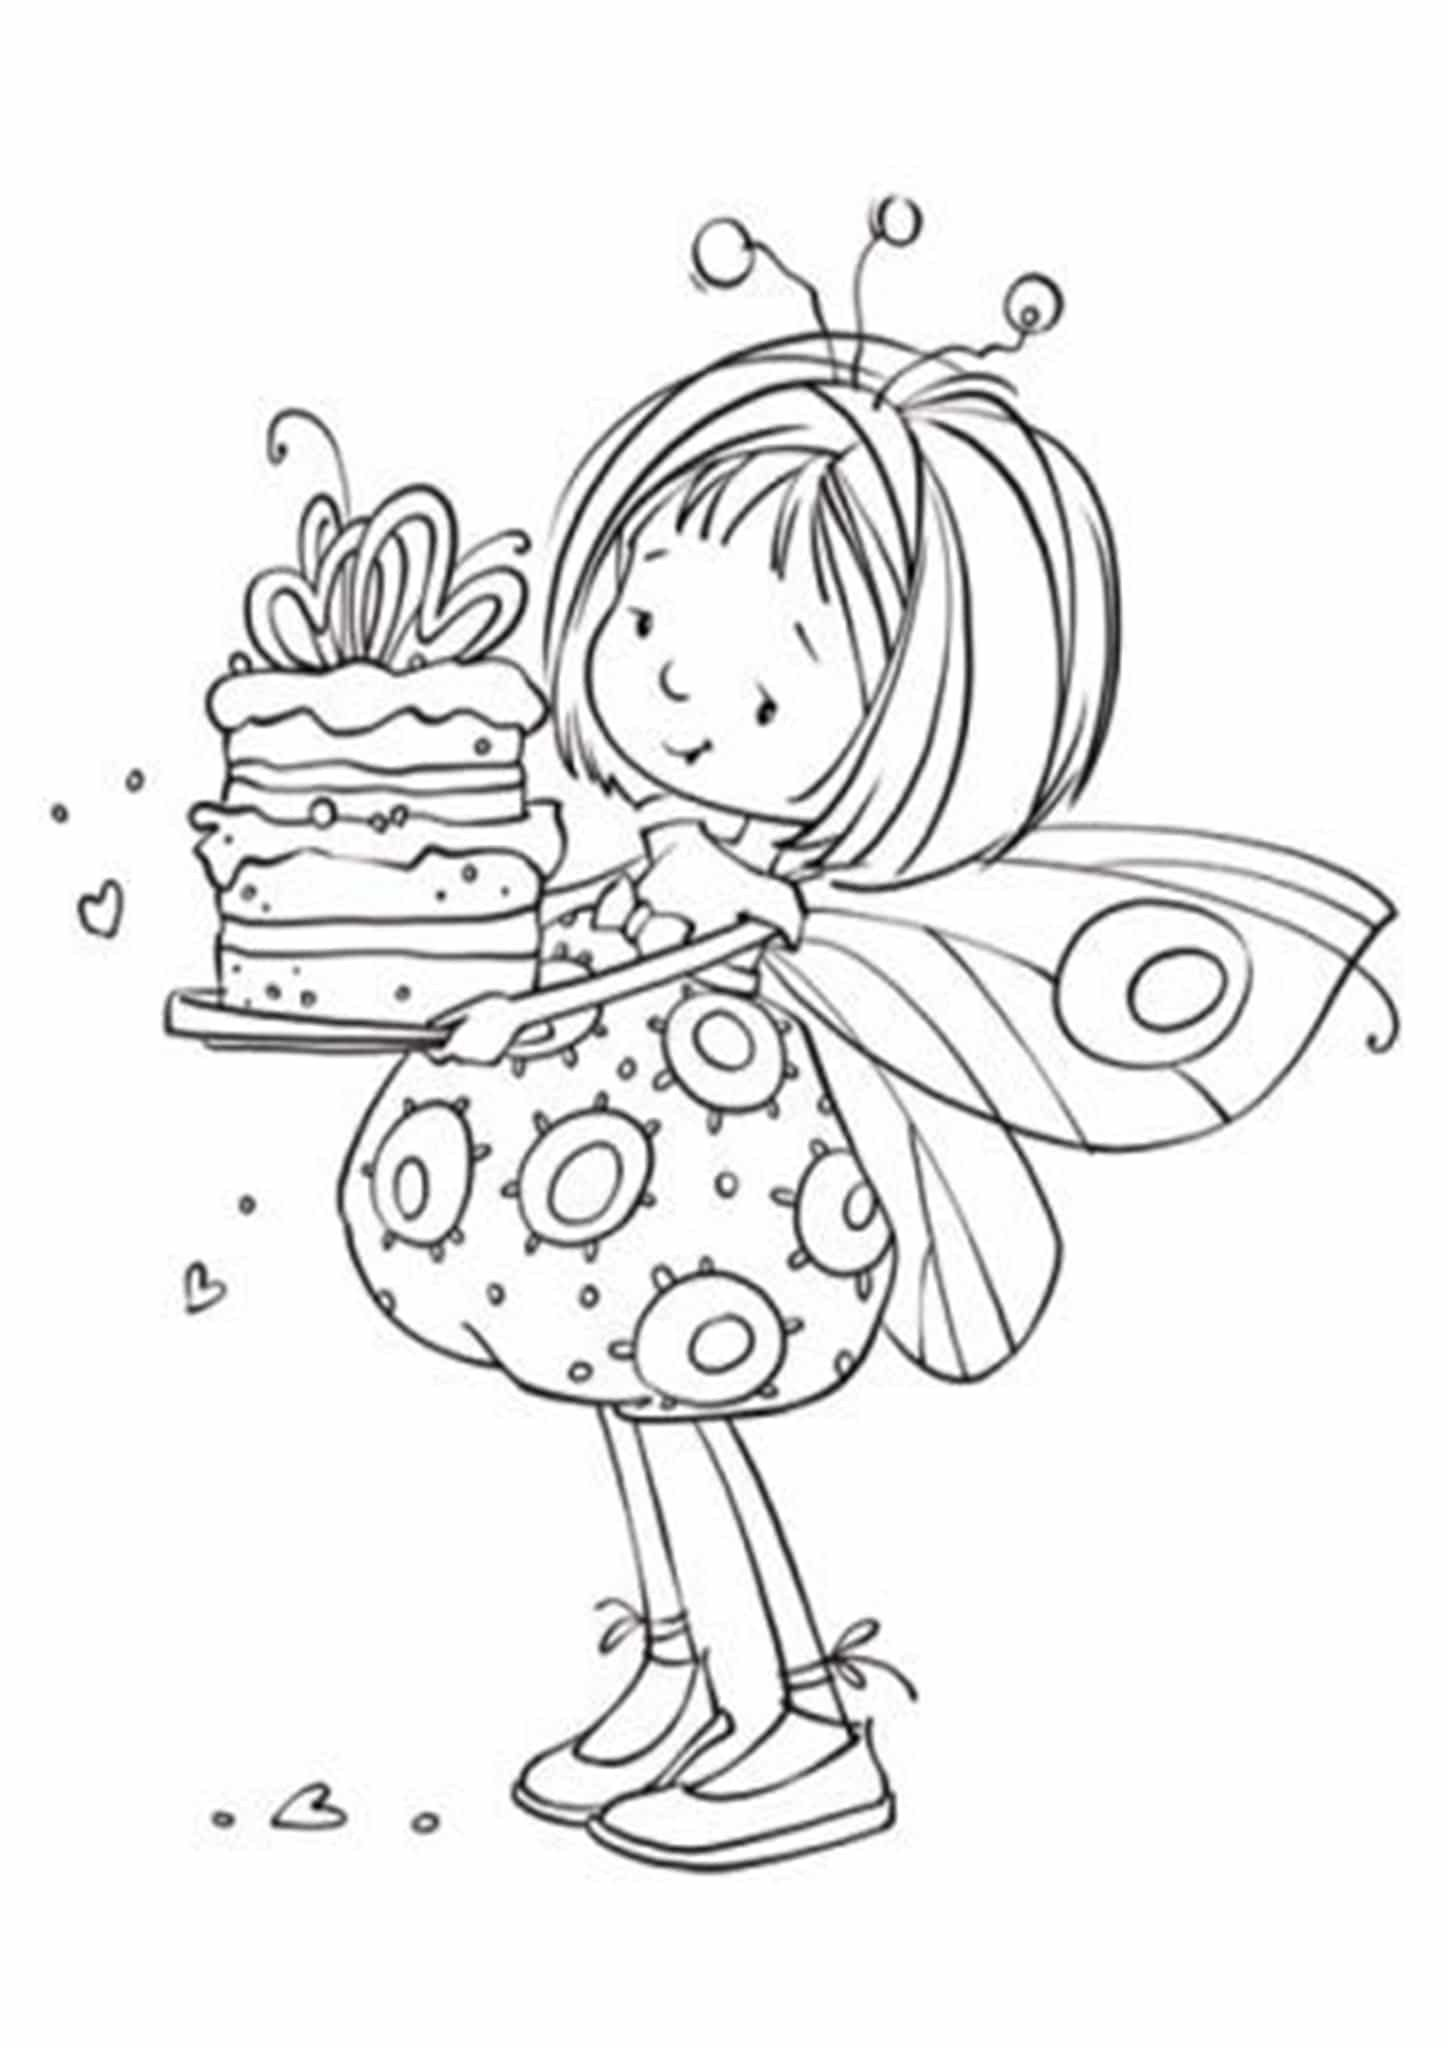 Free Easy To Print Fairy Coloring Pages In 2021 Fairy Coloring Pages Coloring Pages Fairy Coloring